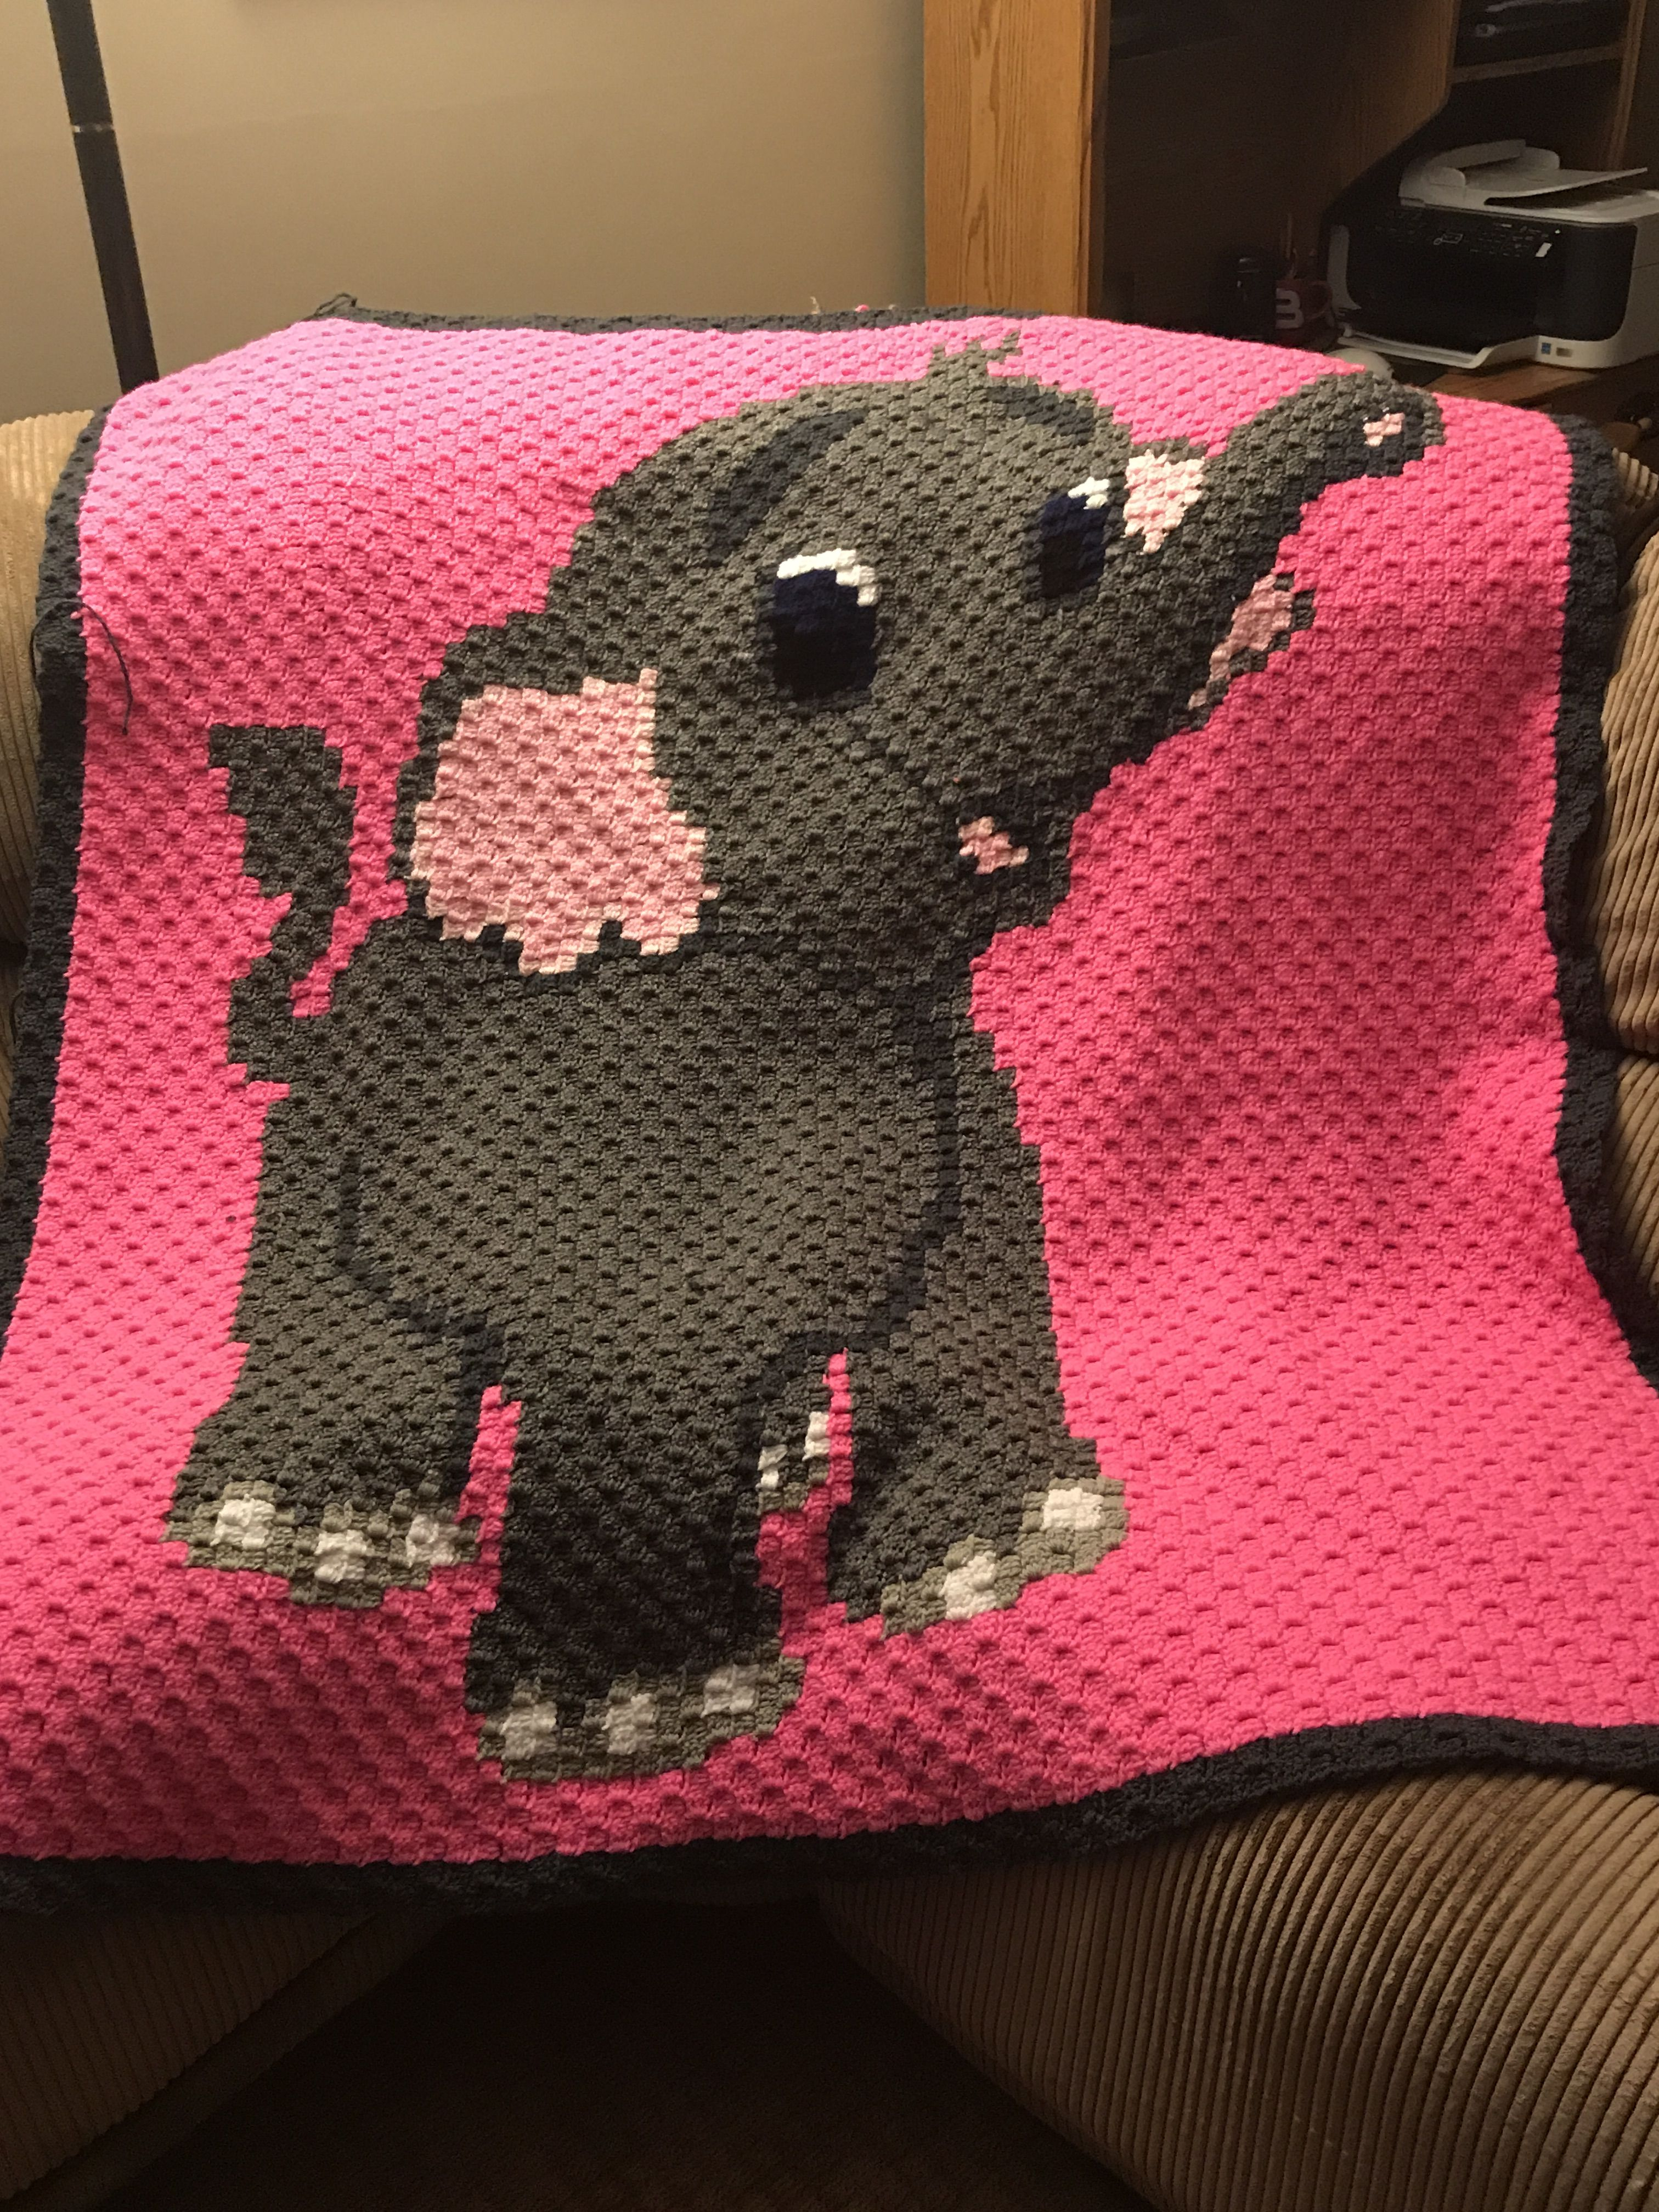 Baby Pram Blanket Knitting Patterns C2c Baby Elephant Blanket Pattern By Deanne 39;s Designs